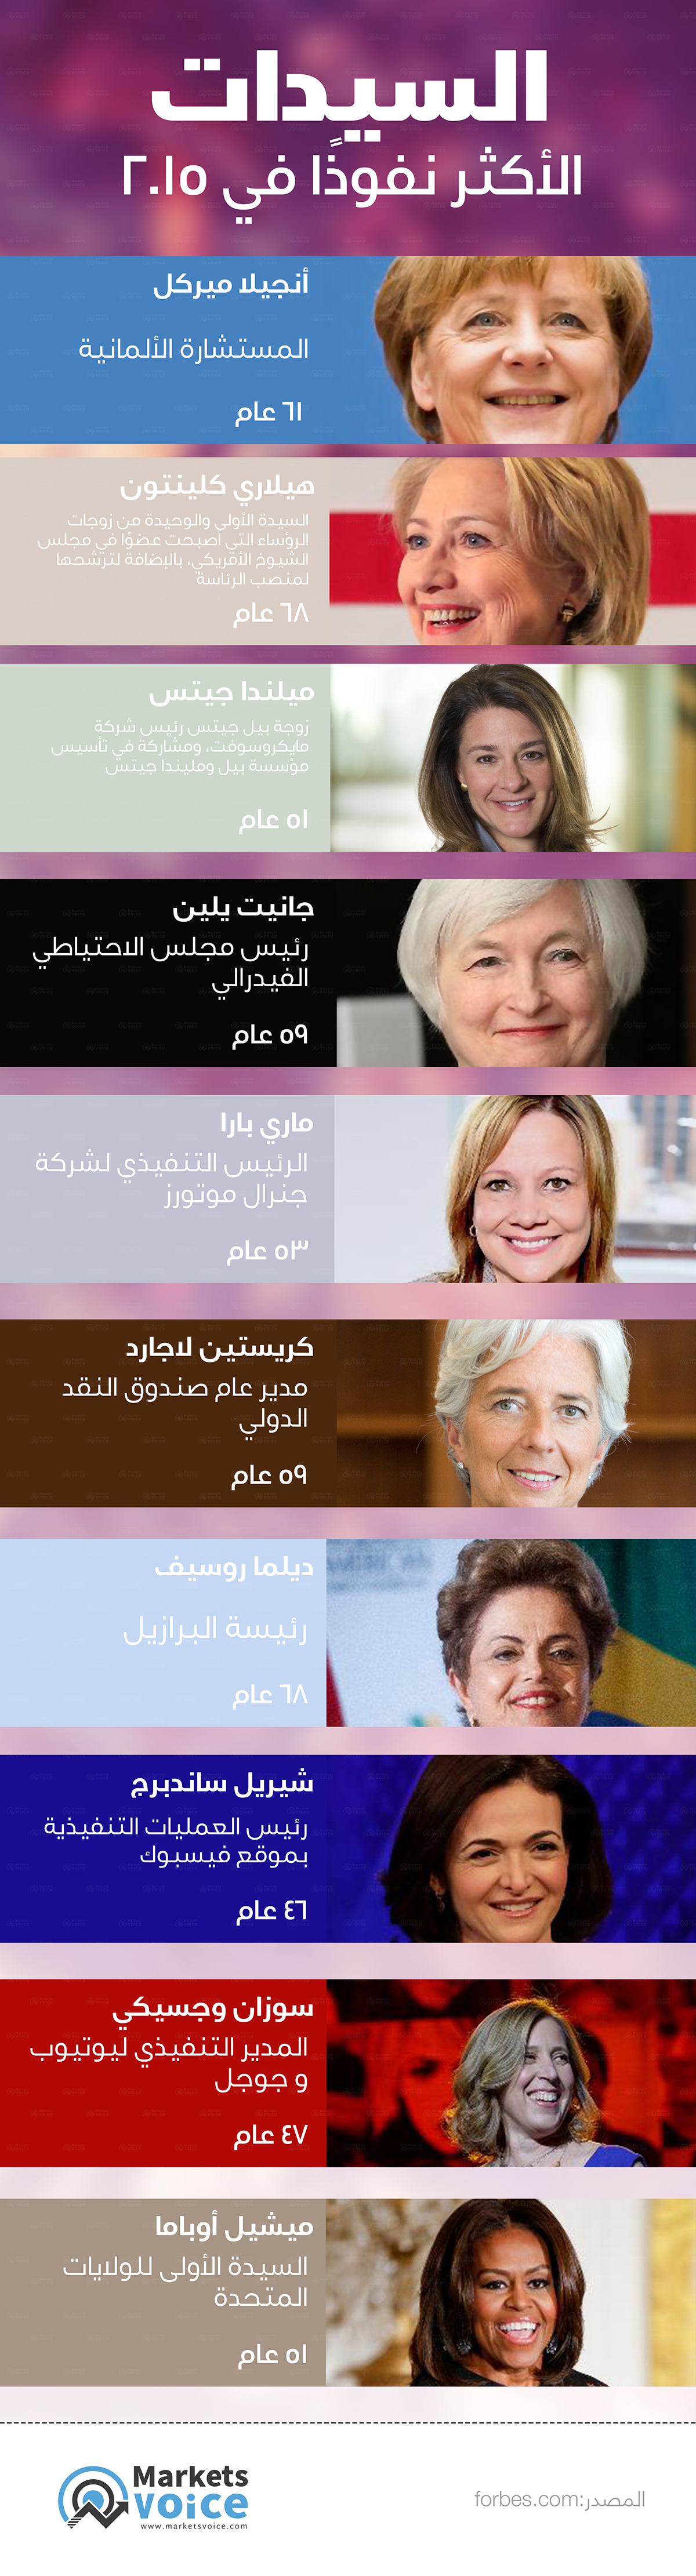 2015's most influential women saeed elgarf Saeed elgarf infographic